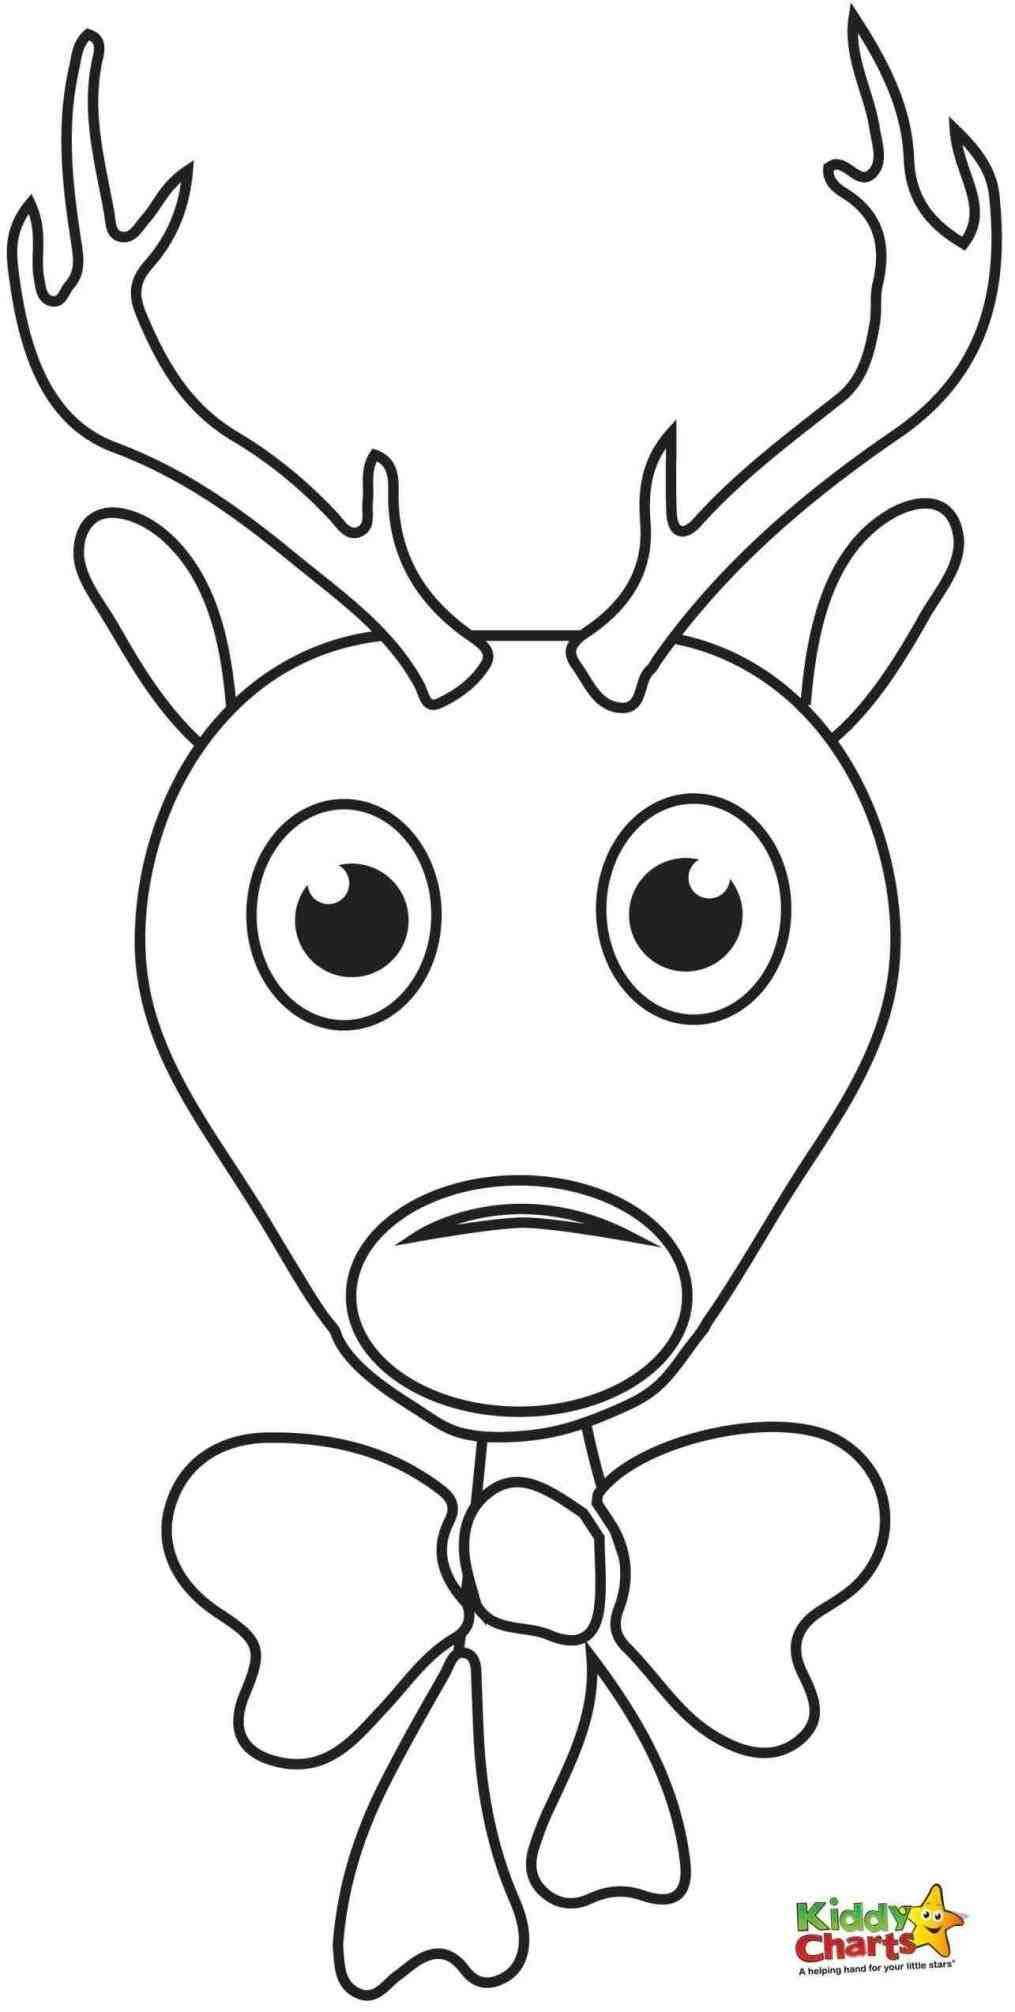 Christmas Reindeer Coloring Sheets With New Post Cute Pages Xmast Pinterest